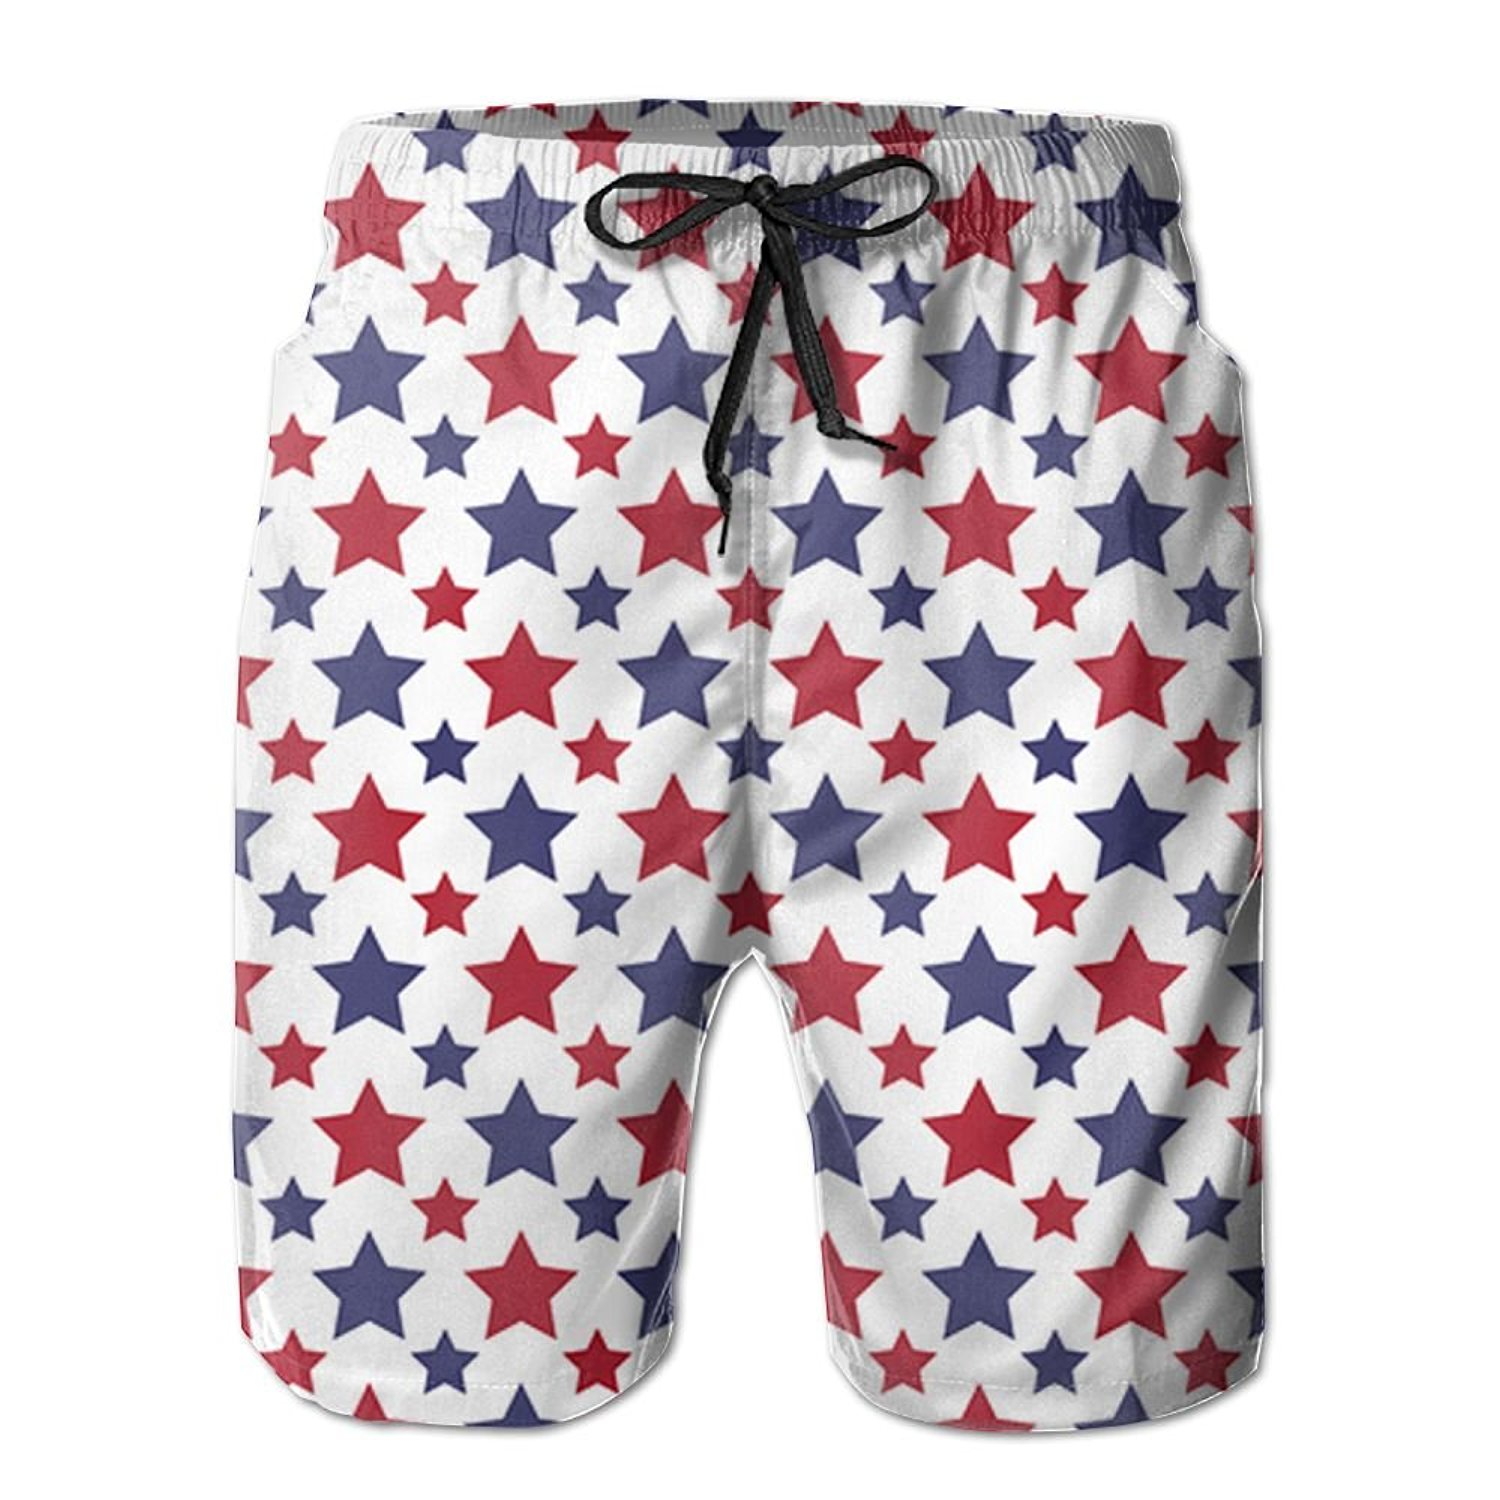 96101a9c20 Get Quotations · Suining Red and Blue Stars White Background Swim Beach  Trunks Cargo Shorts For Mens